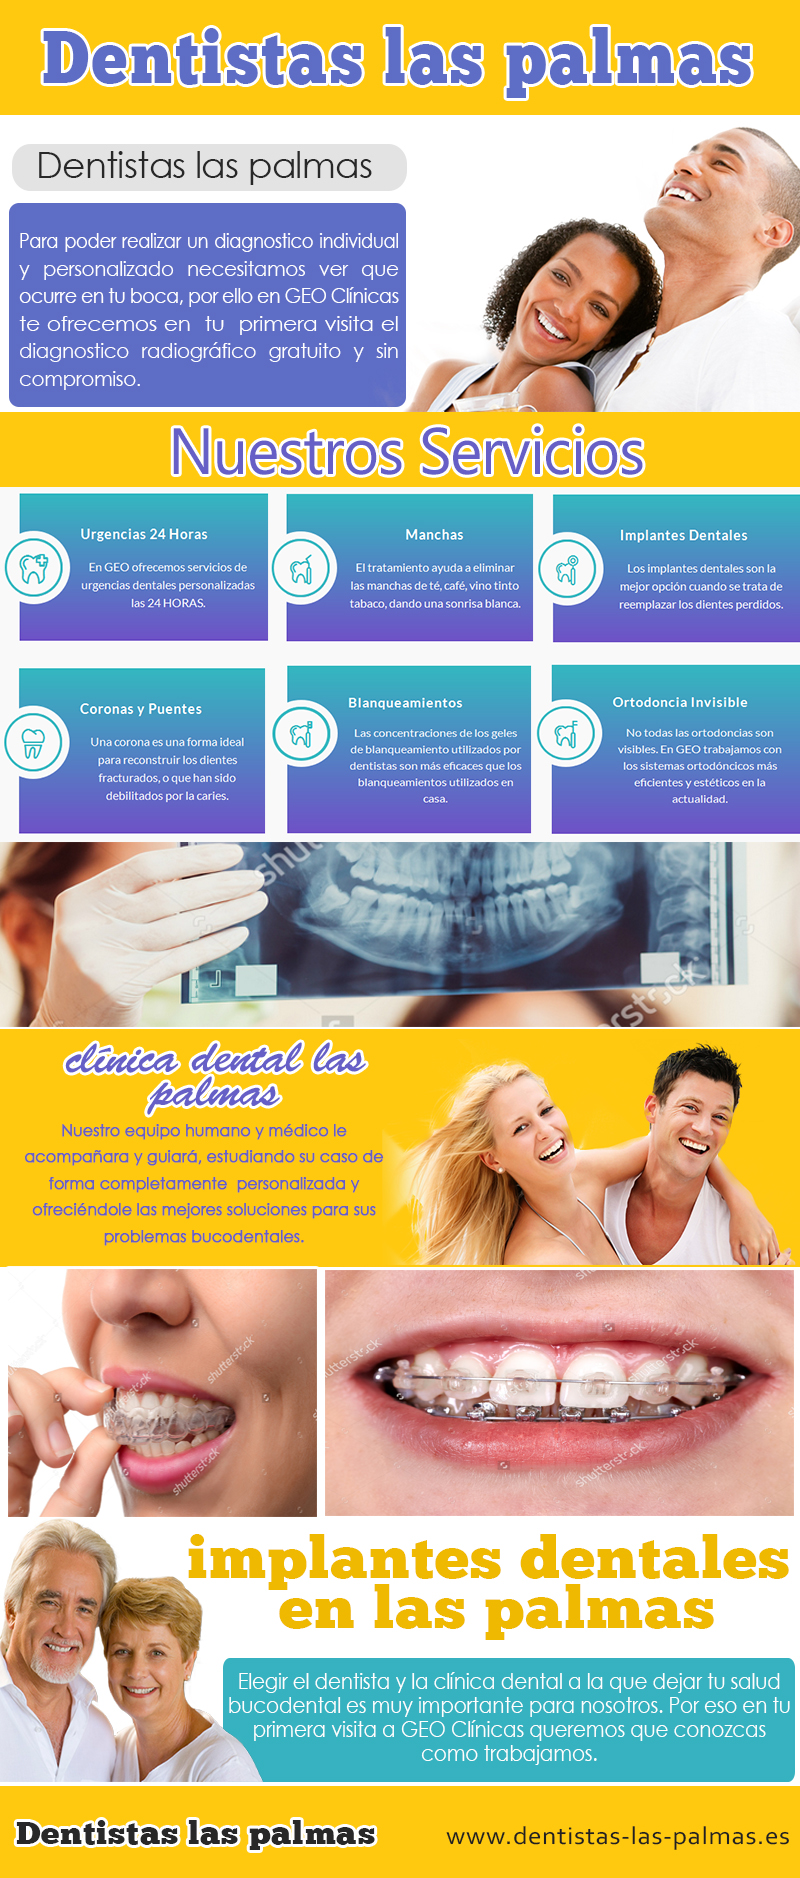 Clnica Dental Las Palmas by dentistaslaspalmas